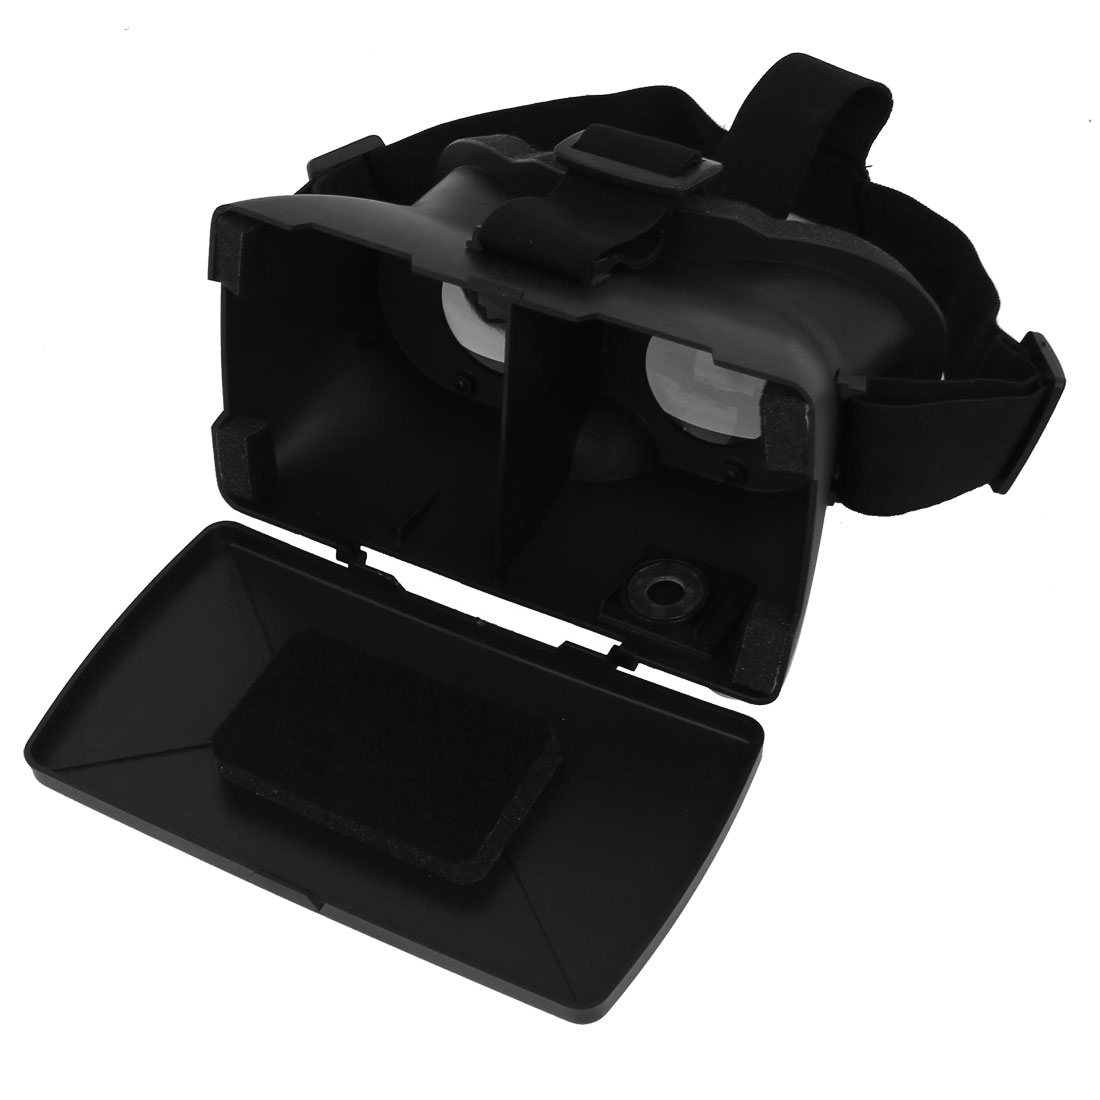 "Color Cross Universal Virtual Reality 3D VR Glasses Black for 4-6.5"" Smartphones"